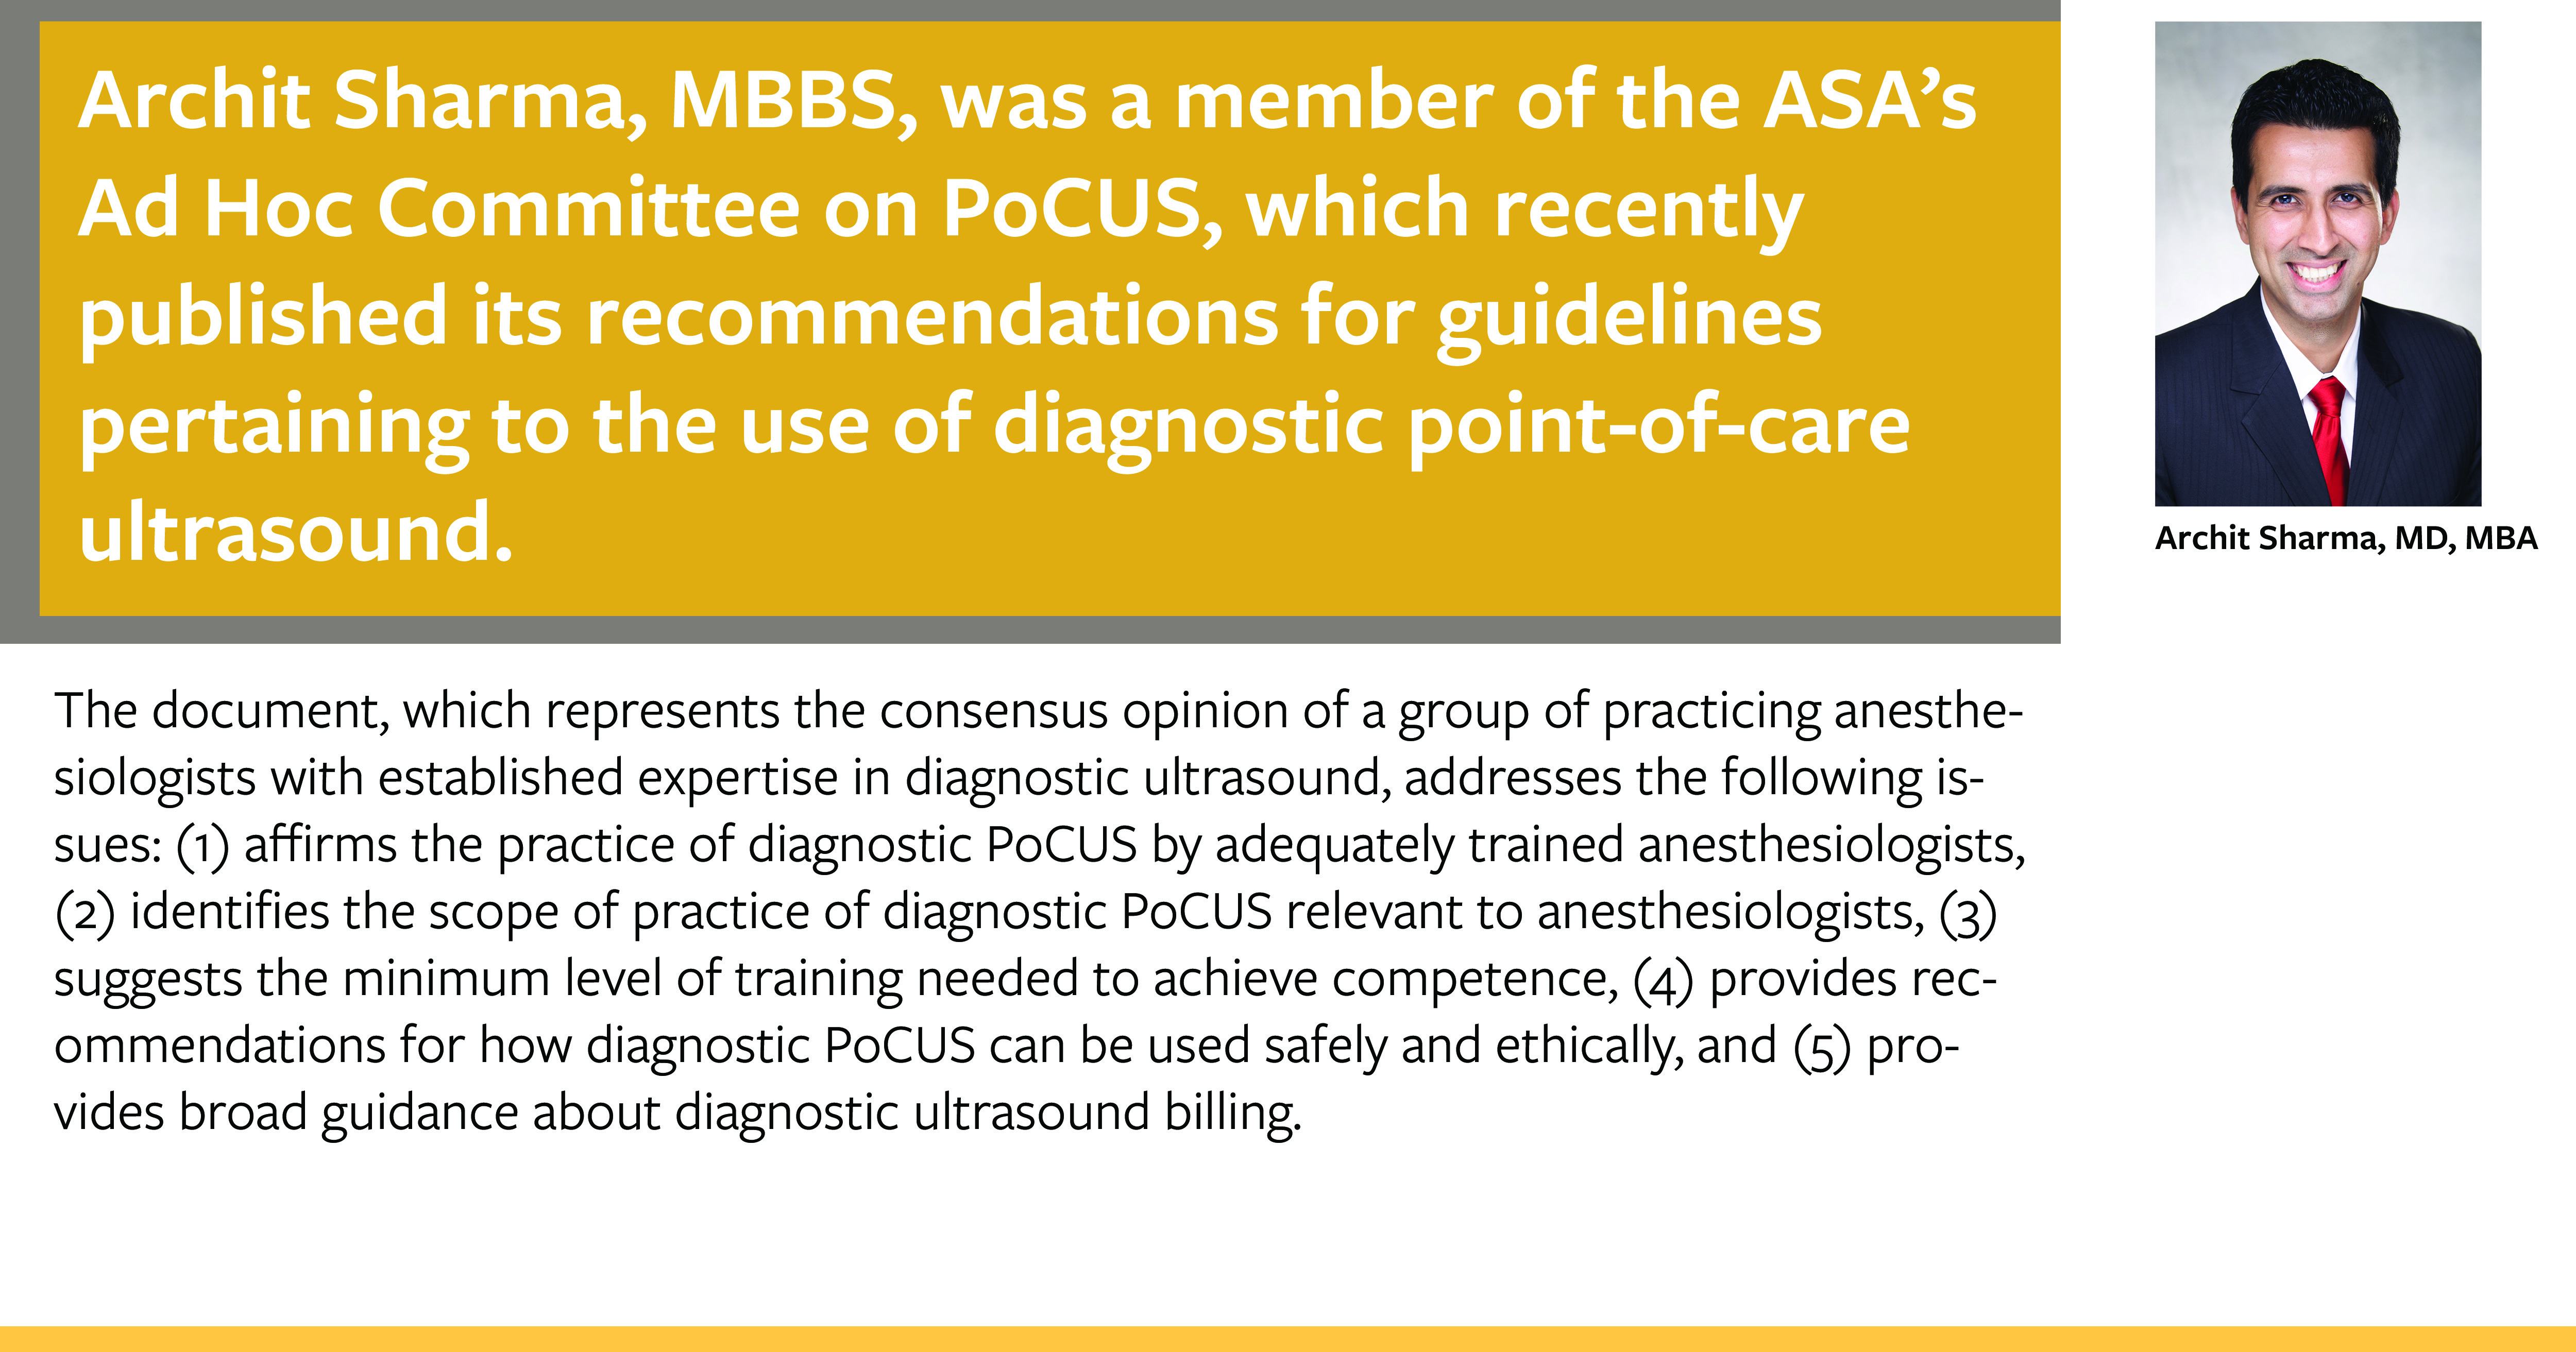 Archit Sharma, MD, MBA, co-authored new recommendations regarding PoCUS guidelines